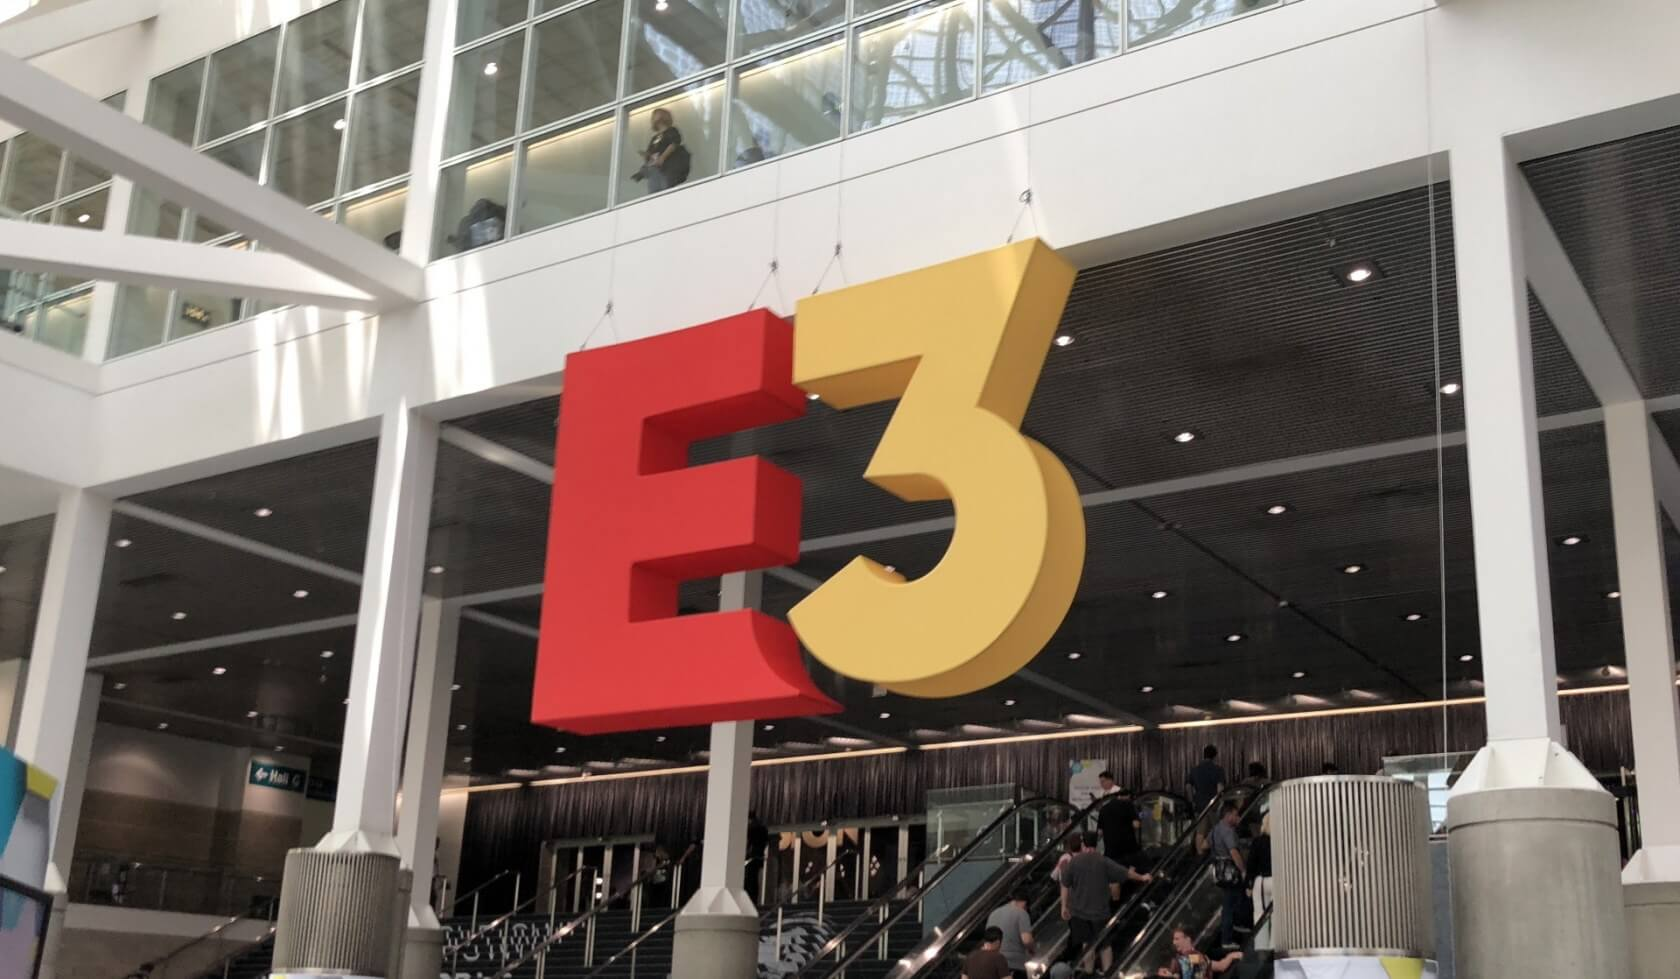 E3 2021's in-person event has been canceled, according to city tourism board